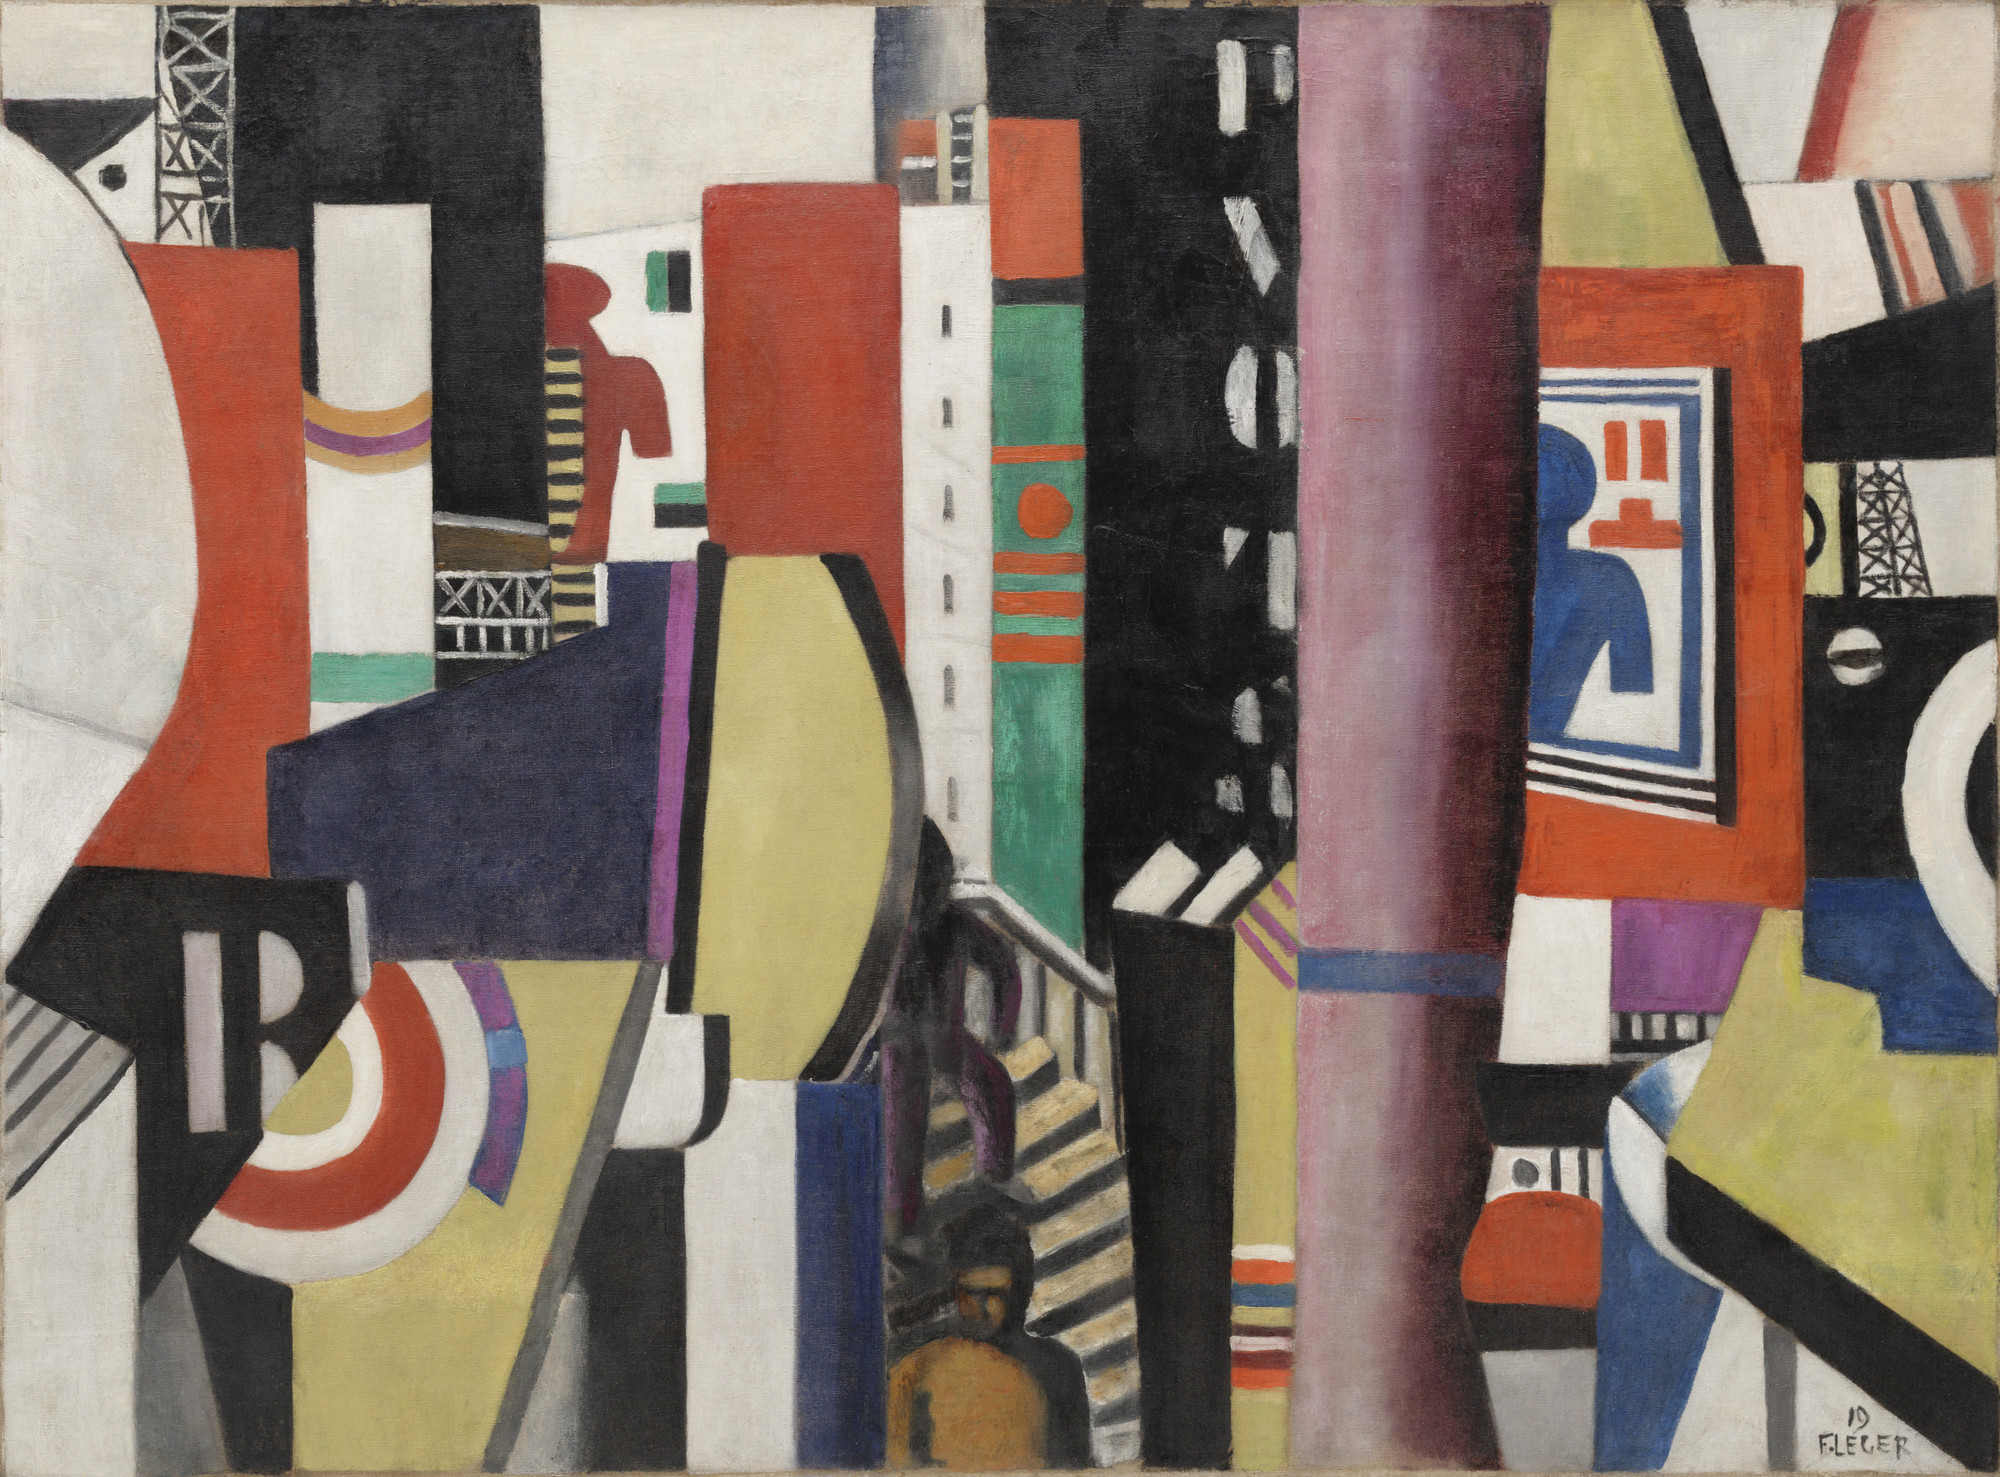 Fernand Léger. The City. 1919. Oil on canvas, 38 1⁄8 × 51 3/8ʺ (96.8 × 130.5 cm). Florene May Schoenborn Bequest. © 2016 Artists Rights Society (ARS), New York / ADAGP, Paris